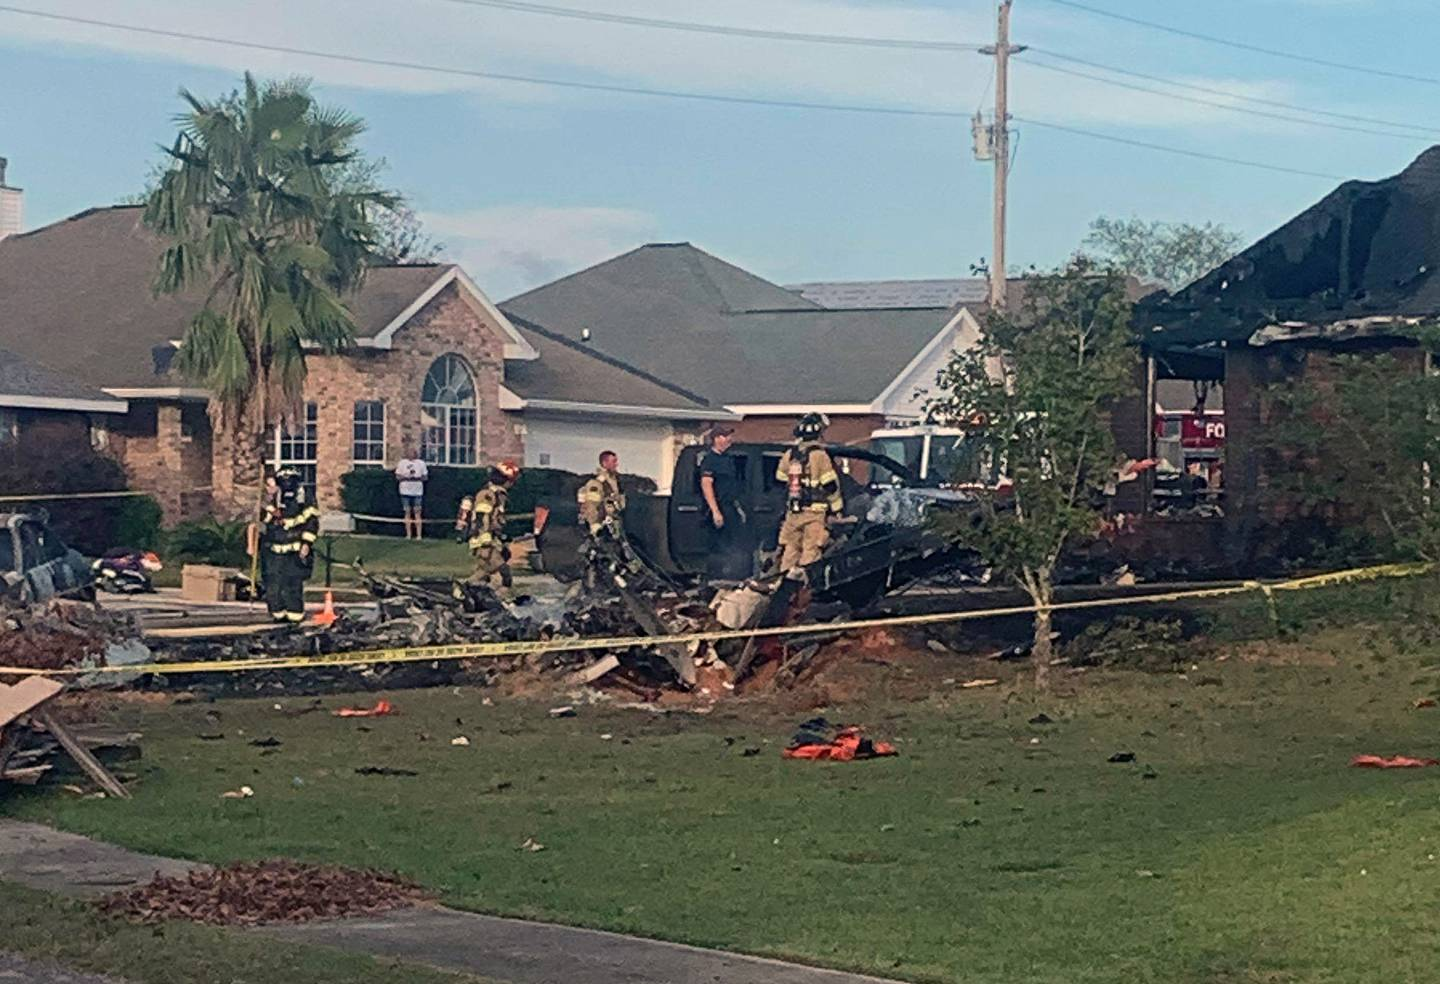 This photo provided by Greg Crippen shows the scene where a U.S. Navy training plane crashed in an Alabama residential neighborhood near the Gulf Coast, Friday, Oct. 23, 2020 near Foley, Ala.